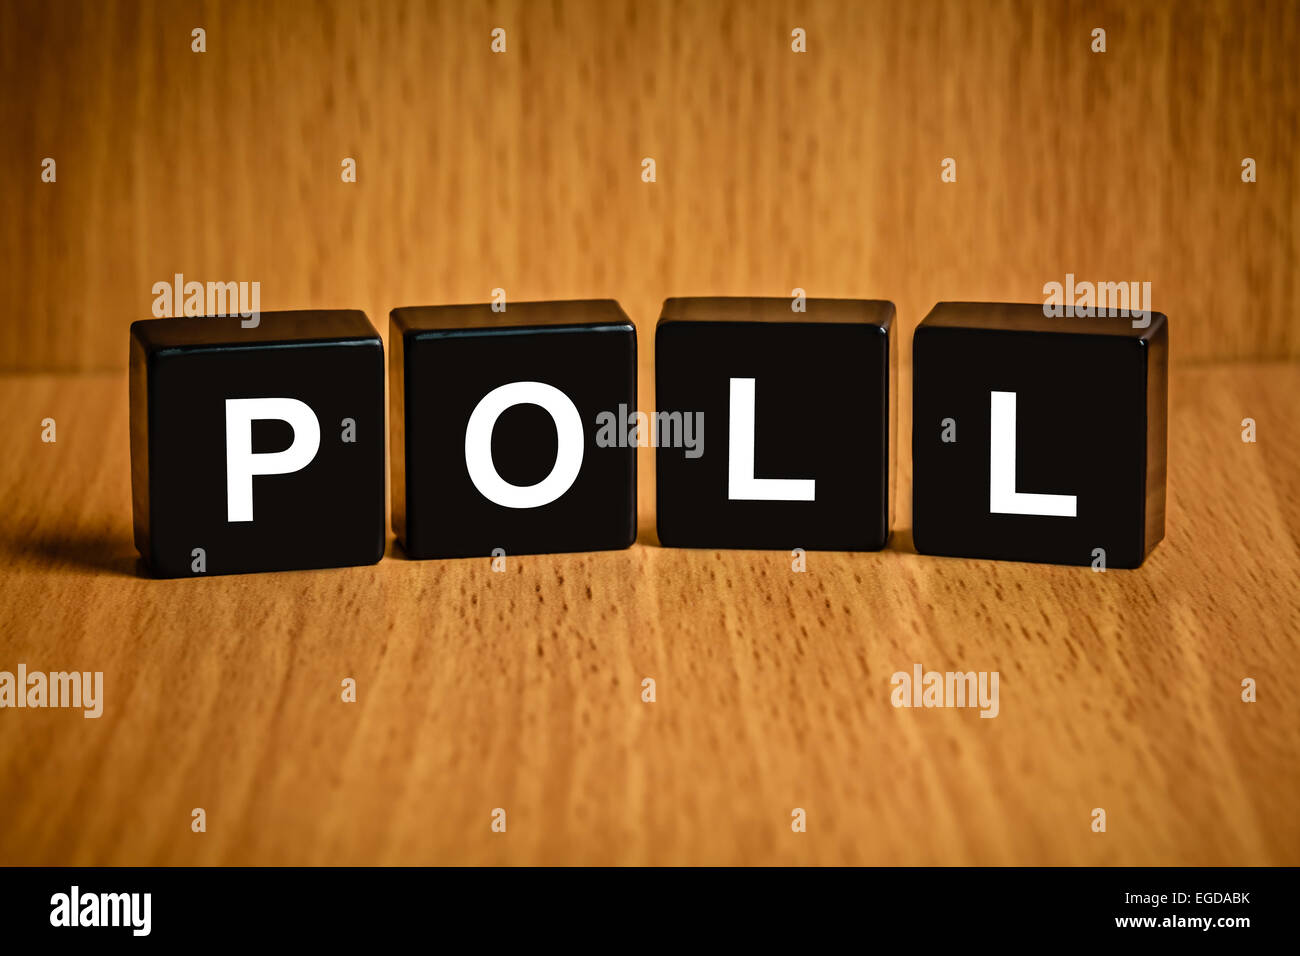 Poll or vote text on black block - Stock Image